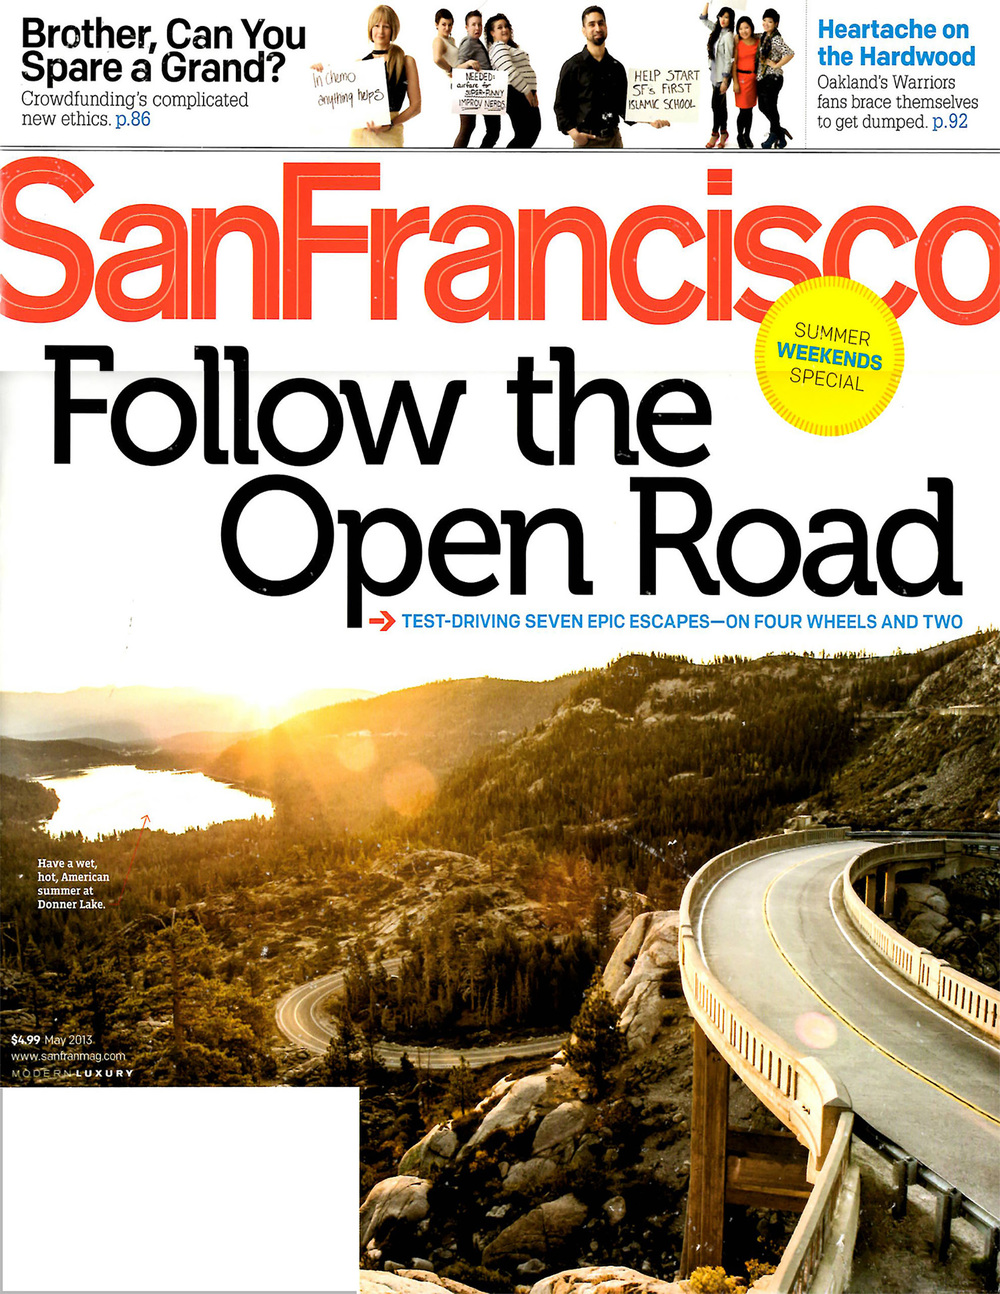 26 a San Francisco Magazine 1 - Cover.jpg